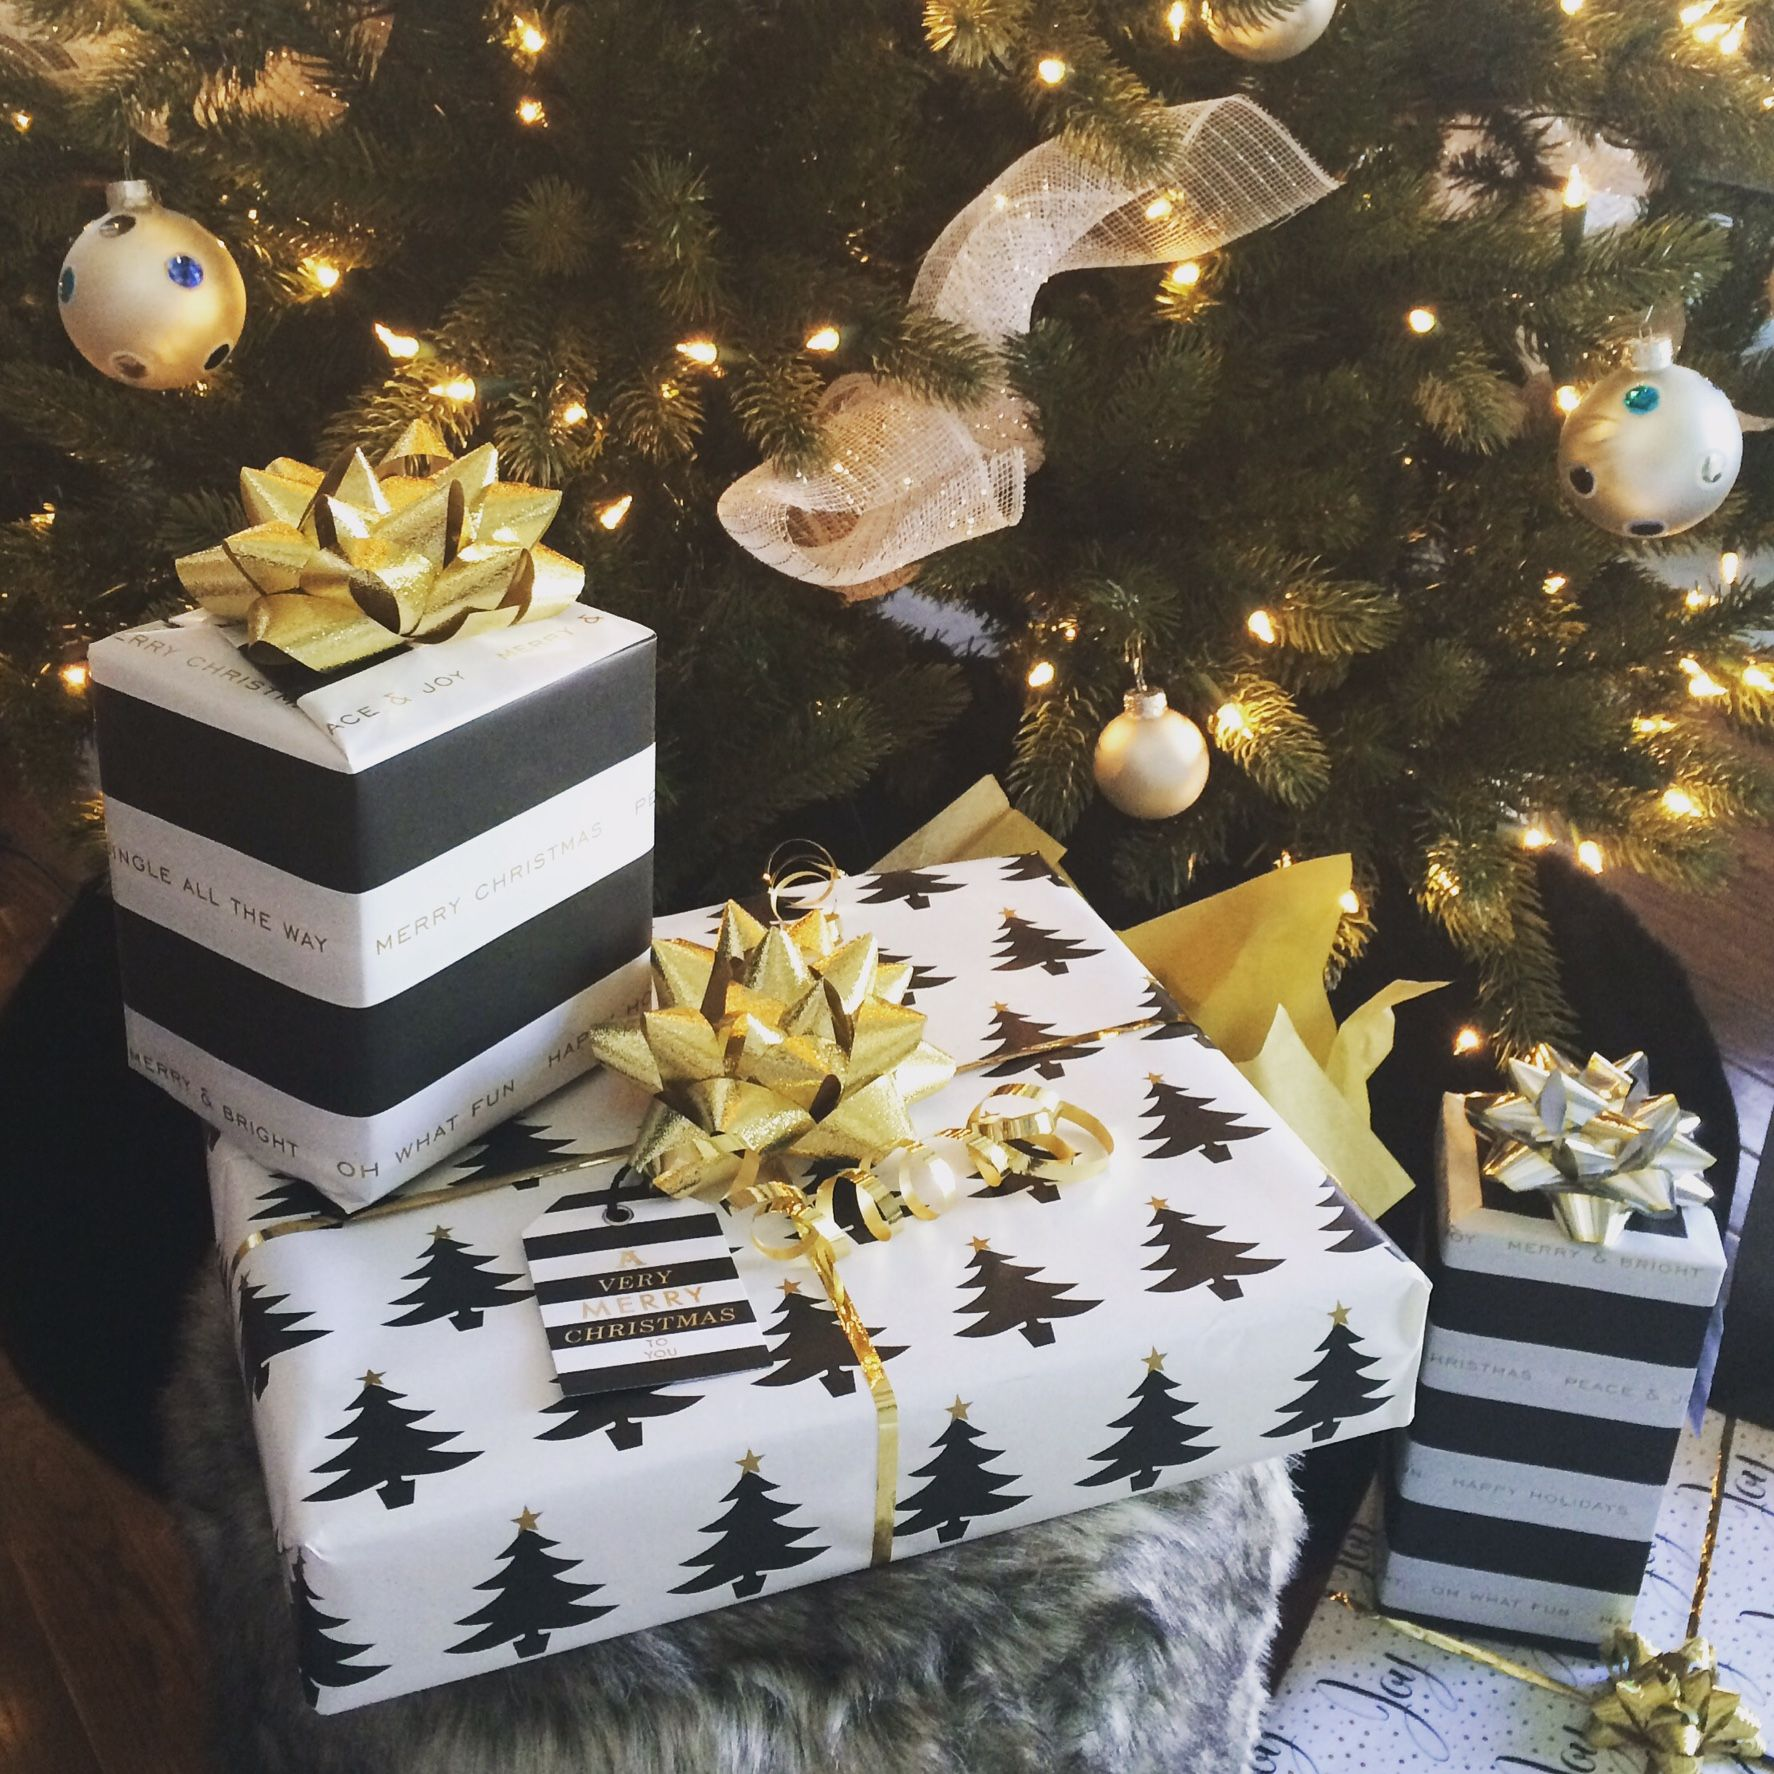 100 Awesome Christmas Stairs Decoration Ideas: Black & White & Gold Christmas Wrapping - Presents